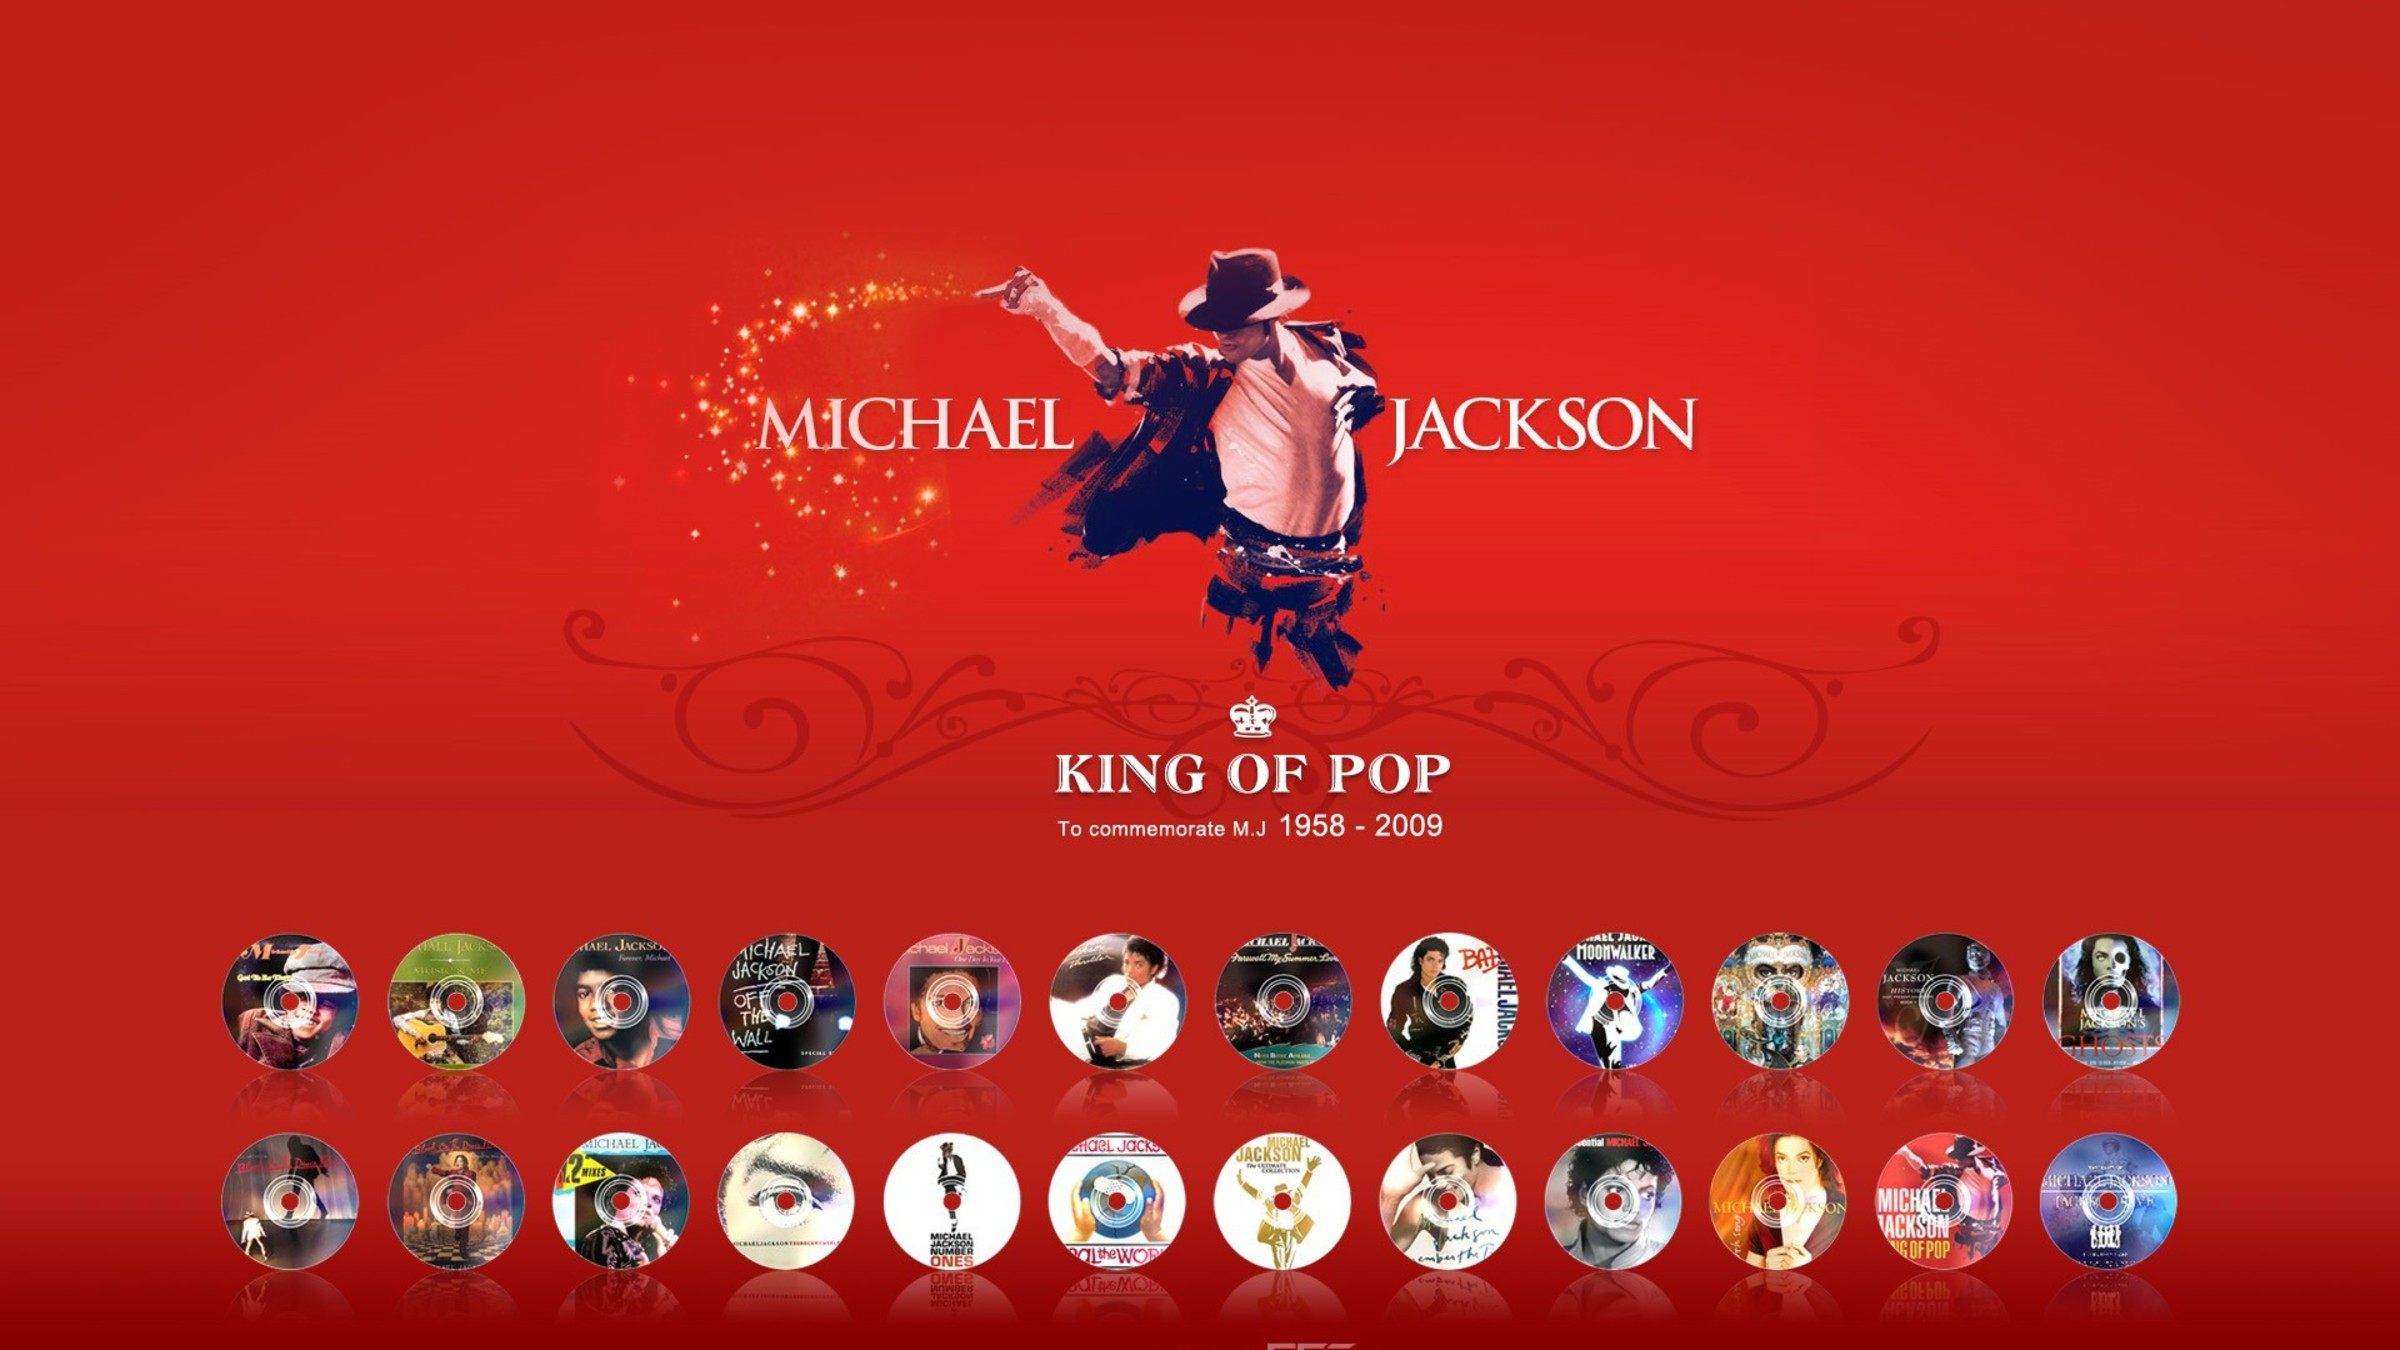 michael jackson red background wallpaper | allwallpaper.in #10806